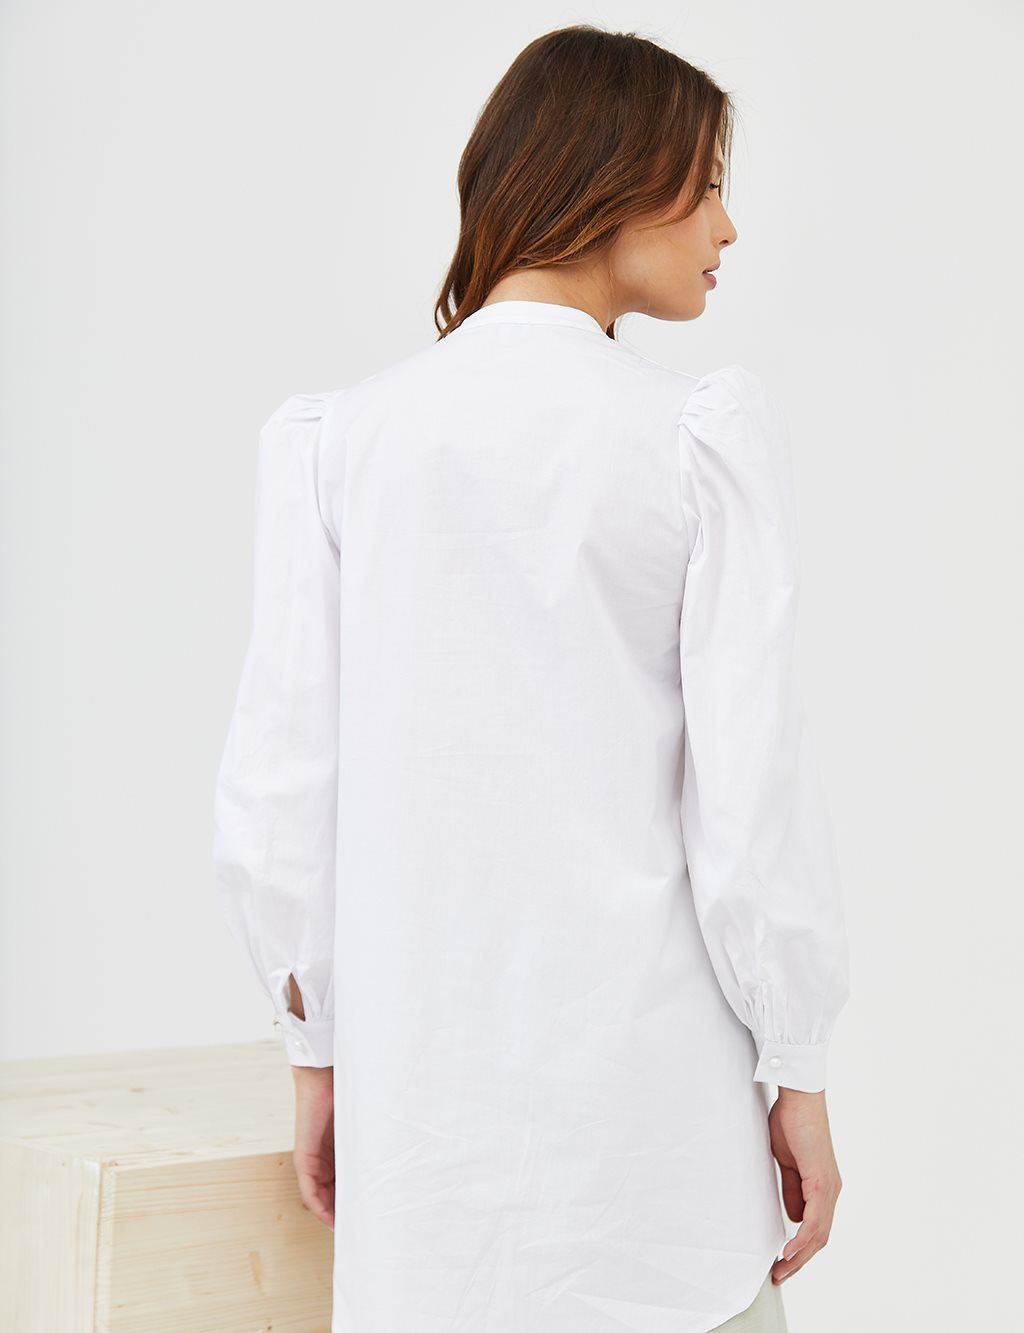 Embroidered Round Neck Collar Tunic B21 21026 White